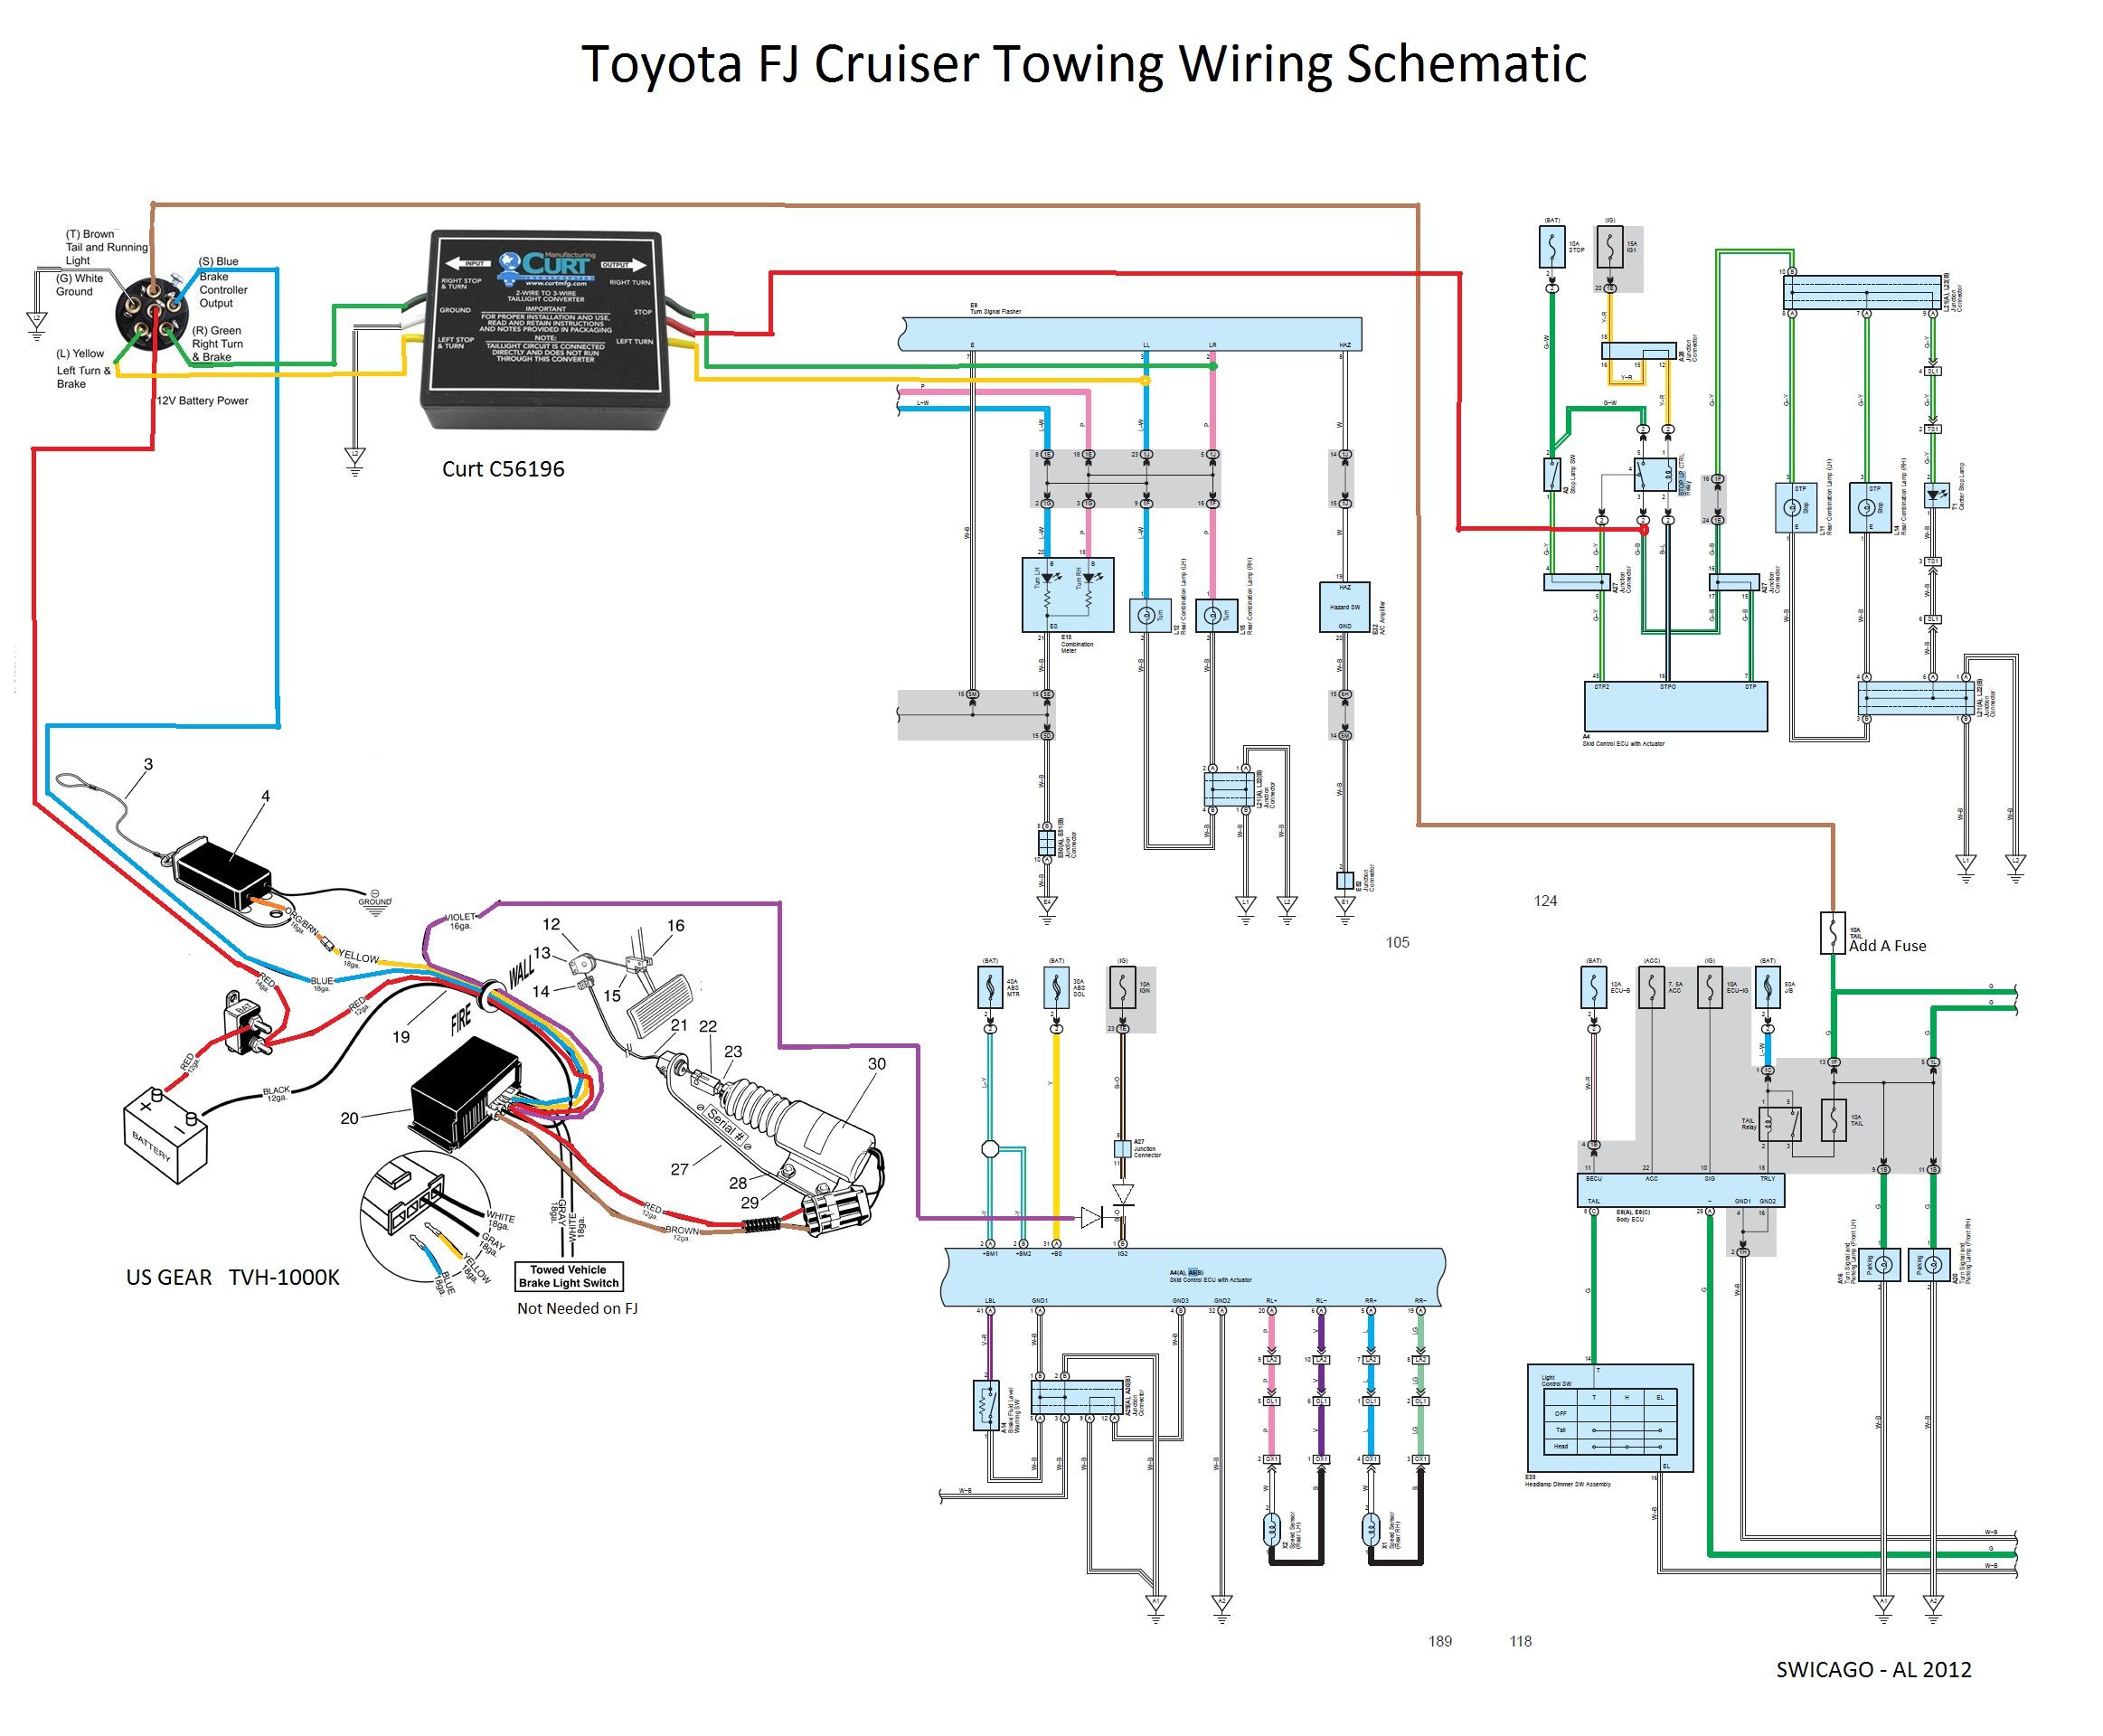 TowSchematic fj cruiser wiring diagram fj cruiser forum \u2022 free wiring diagrams fj cruiser subwoofer wiring diagram at fashall.co